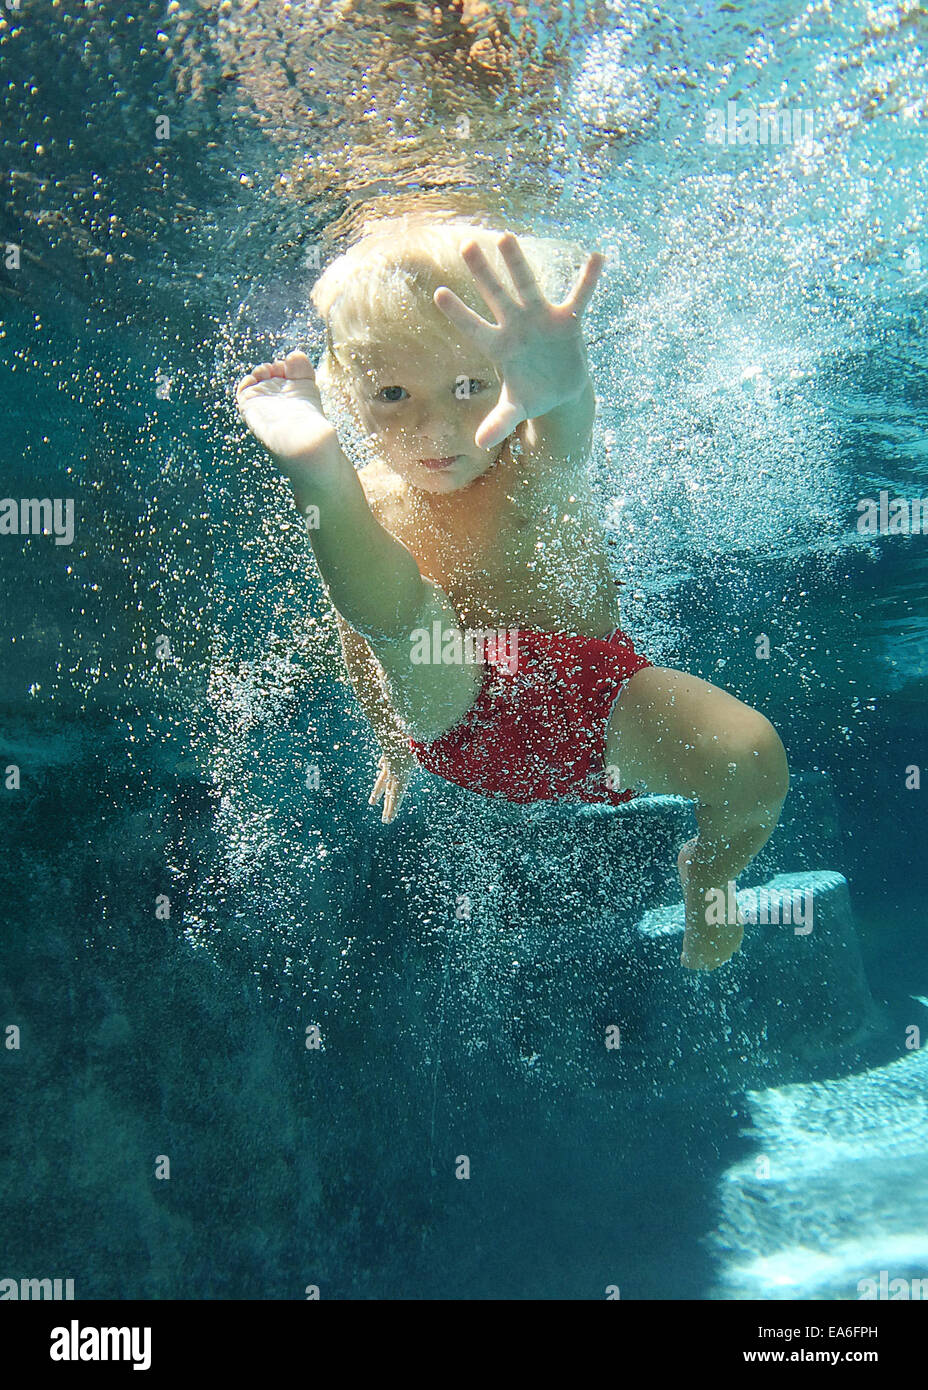 Boy swimming underwater in swimming pool - Stock Image